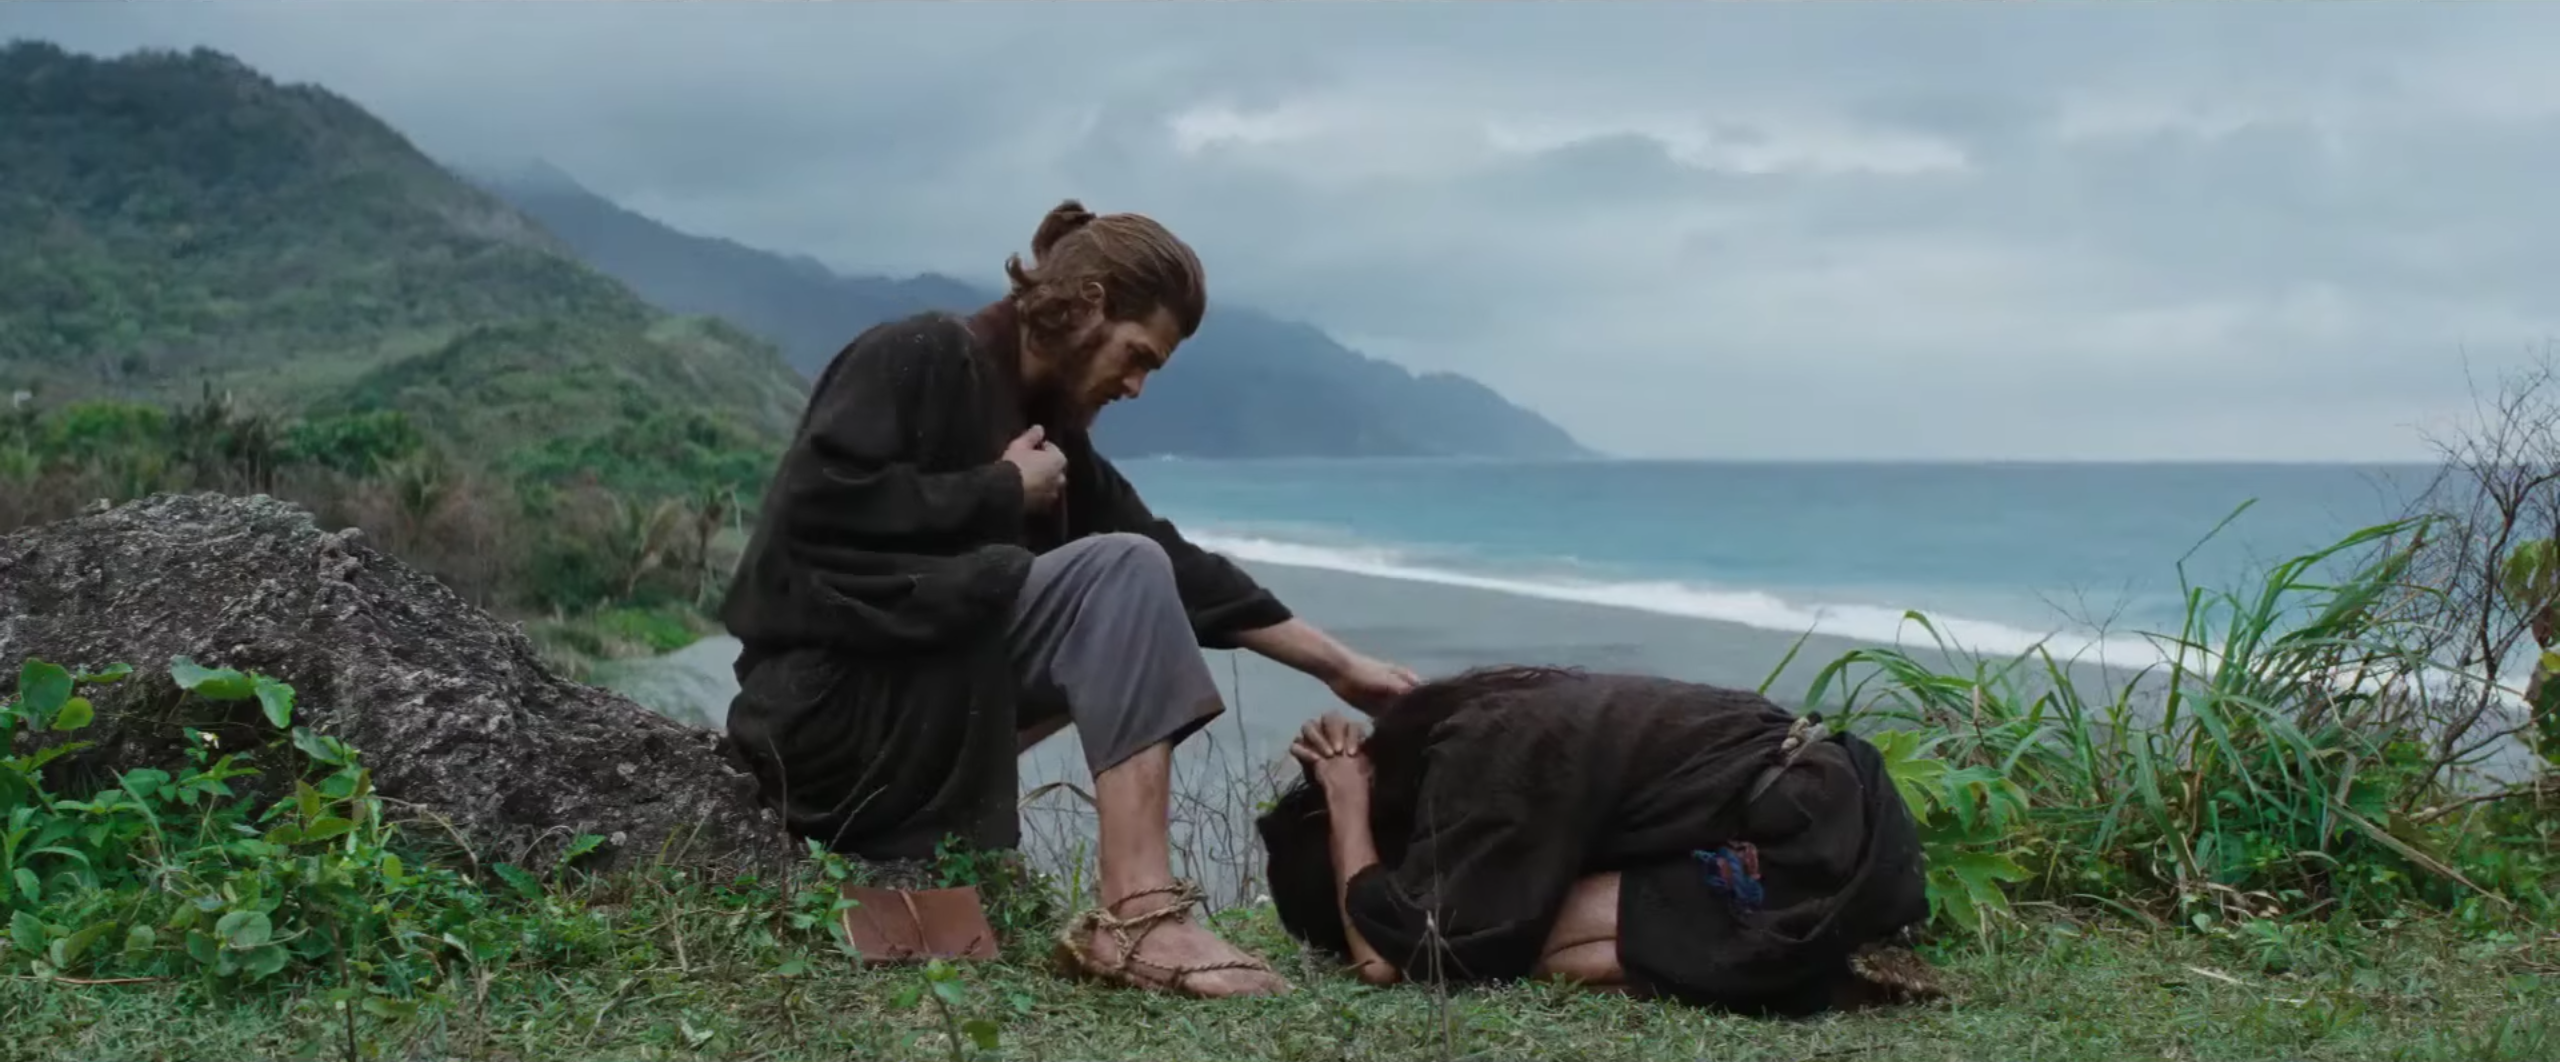 Silence Movie Review : Gut wrenching yet Rewarding